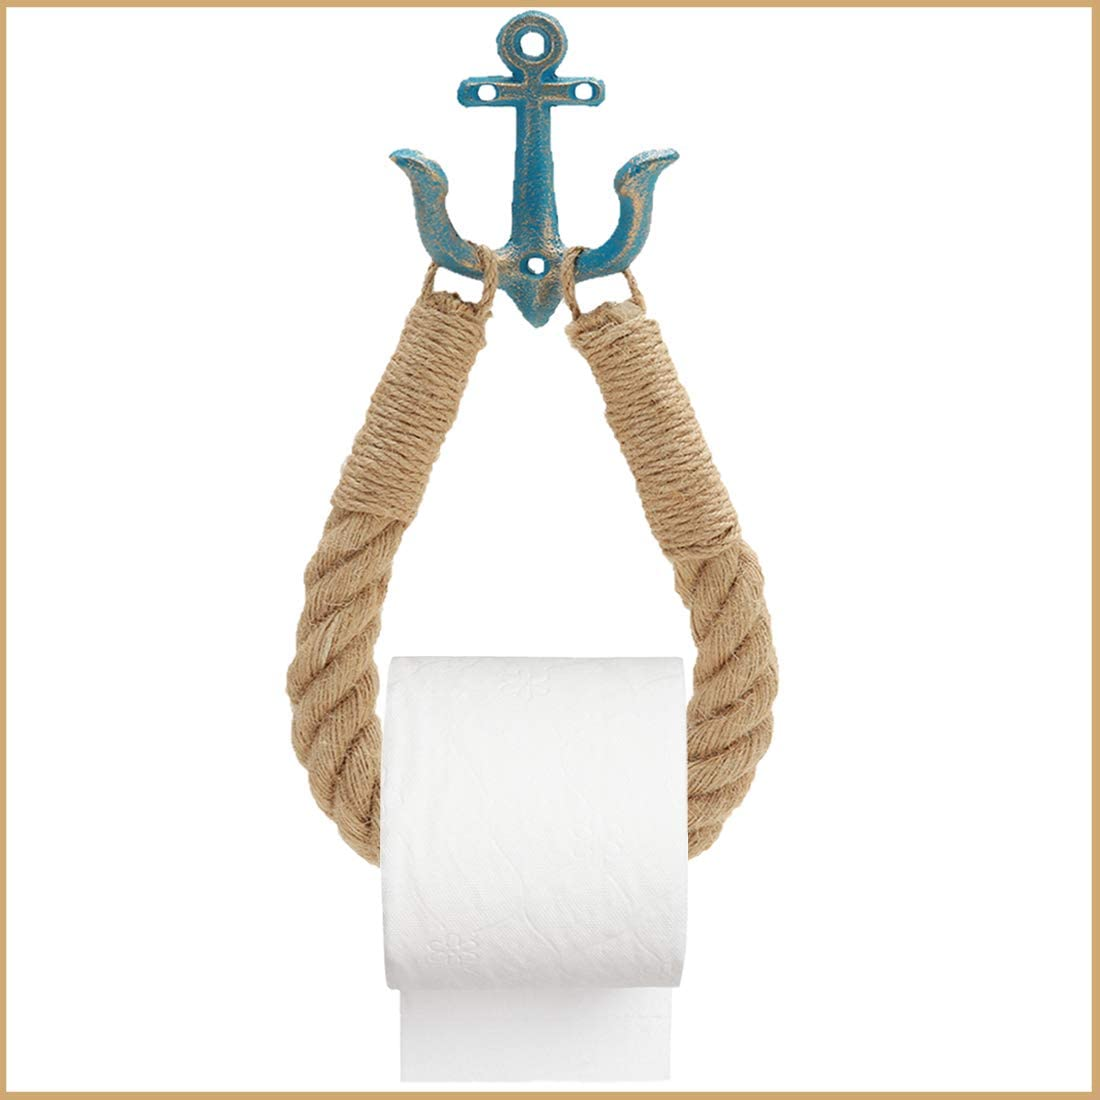 CAYOREPO Nautical Toilet Paper Holder,Rustic-Industrial Wall-Mounted Nautical Toilet Paper Towel Ring with Metal Hook for Bathroom Decor (Blue)